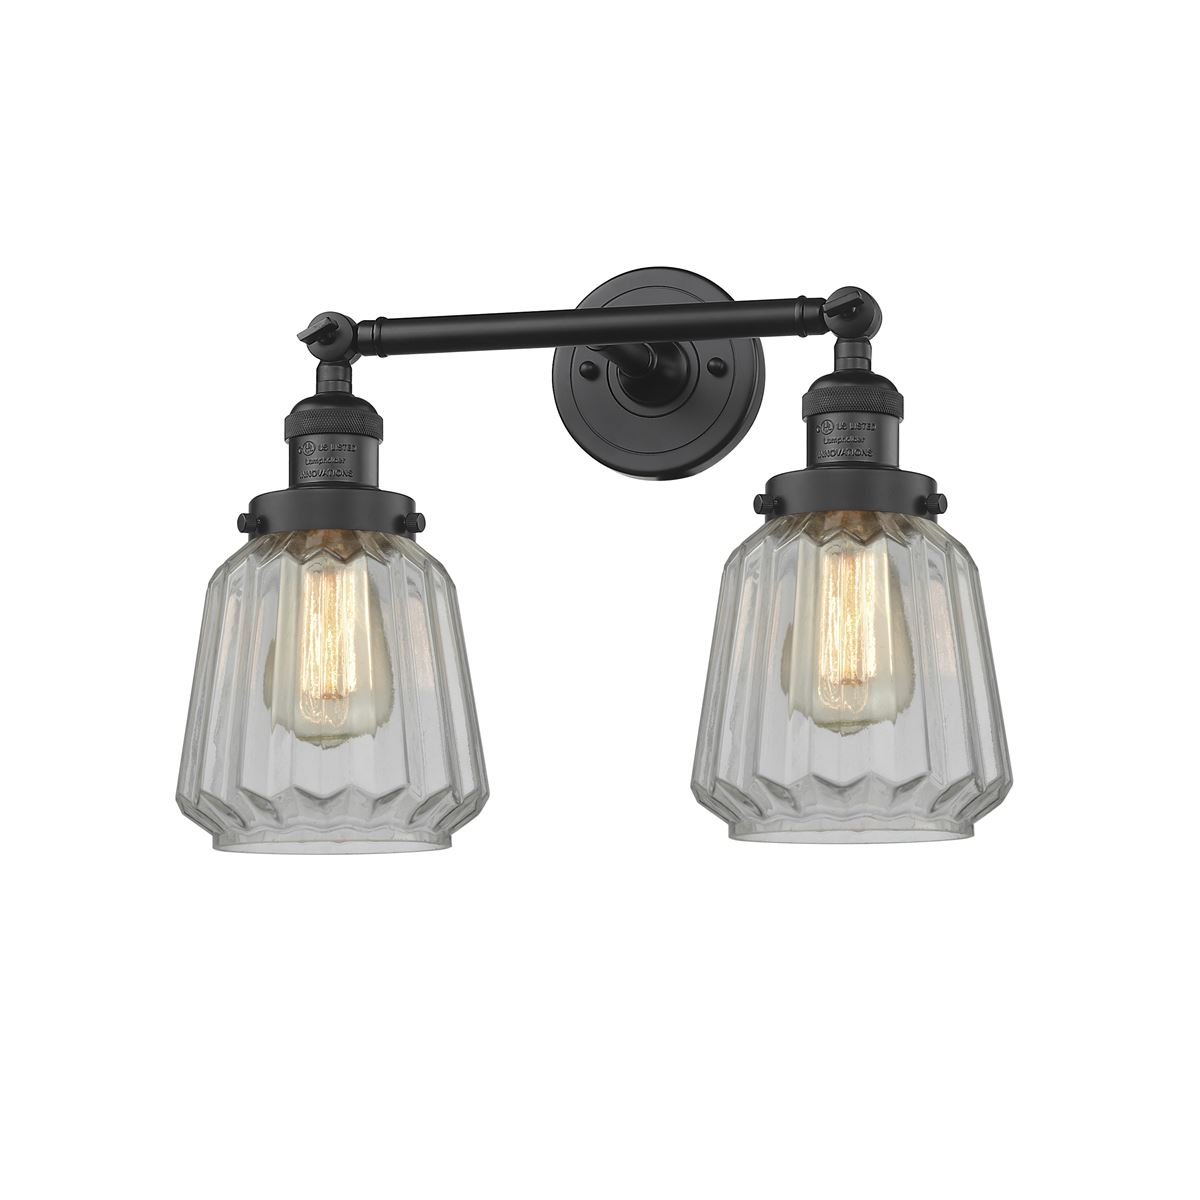 Innovations Chatham 2 Light Dimmable LED Bathroom Fixture - Black ...